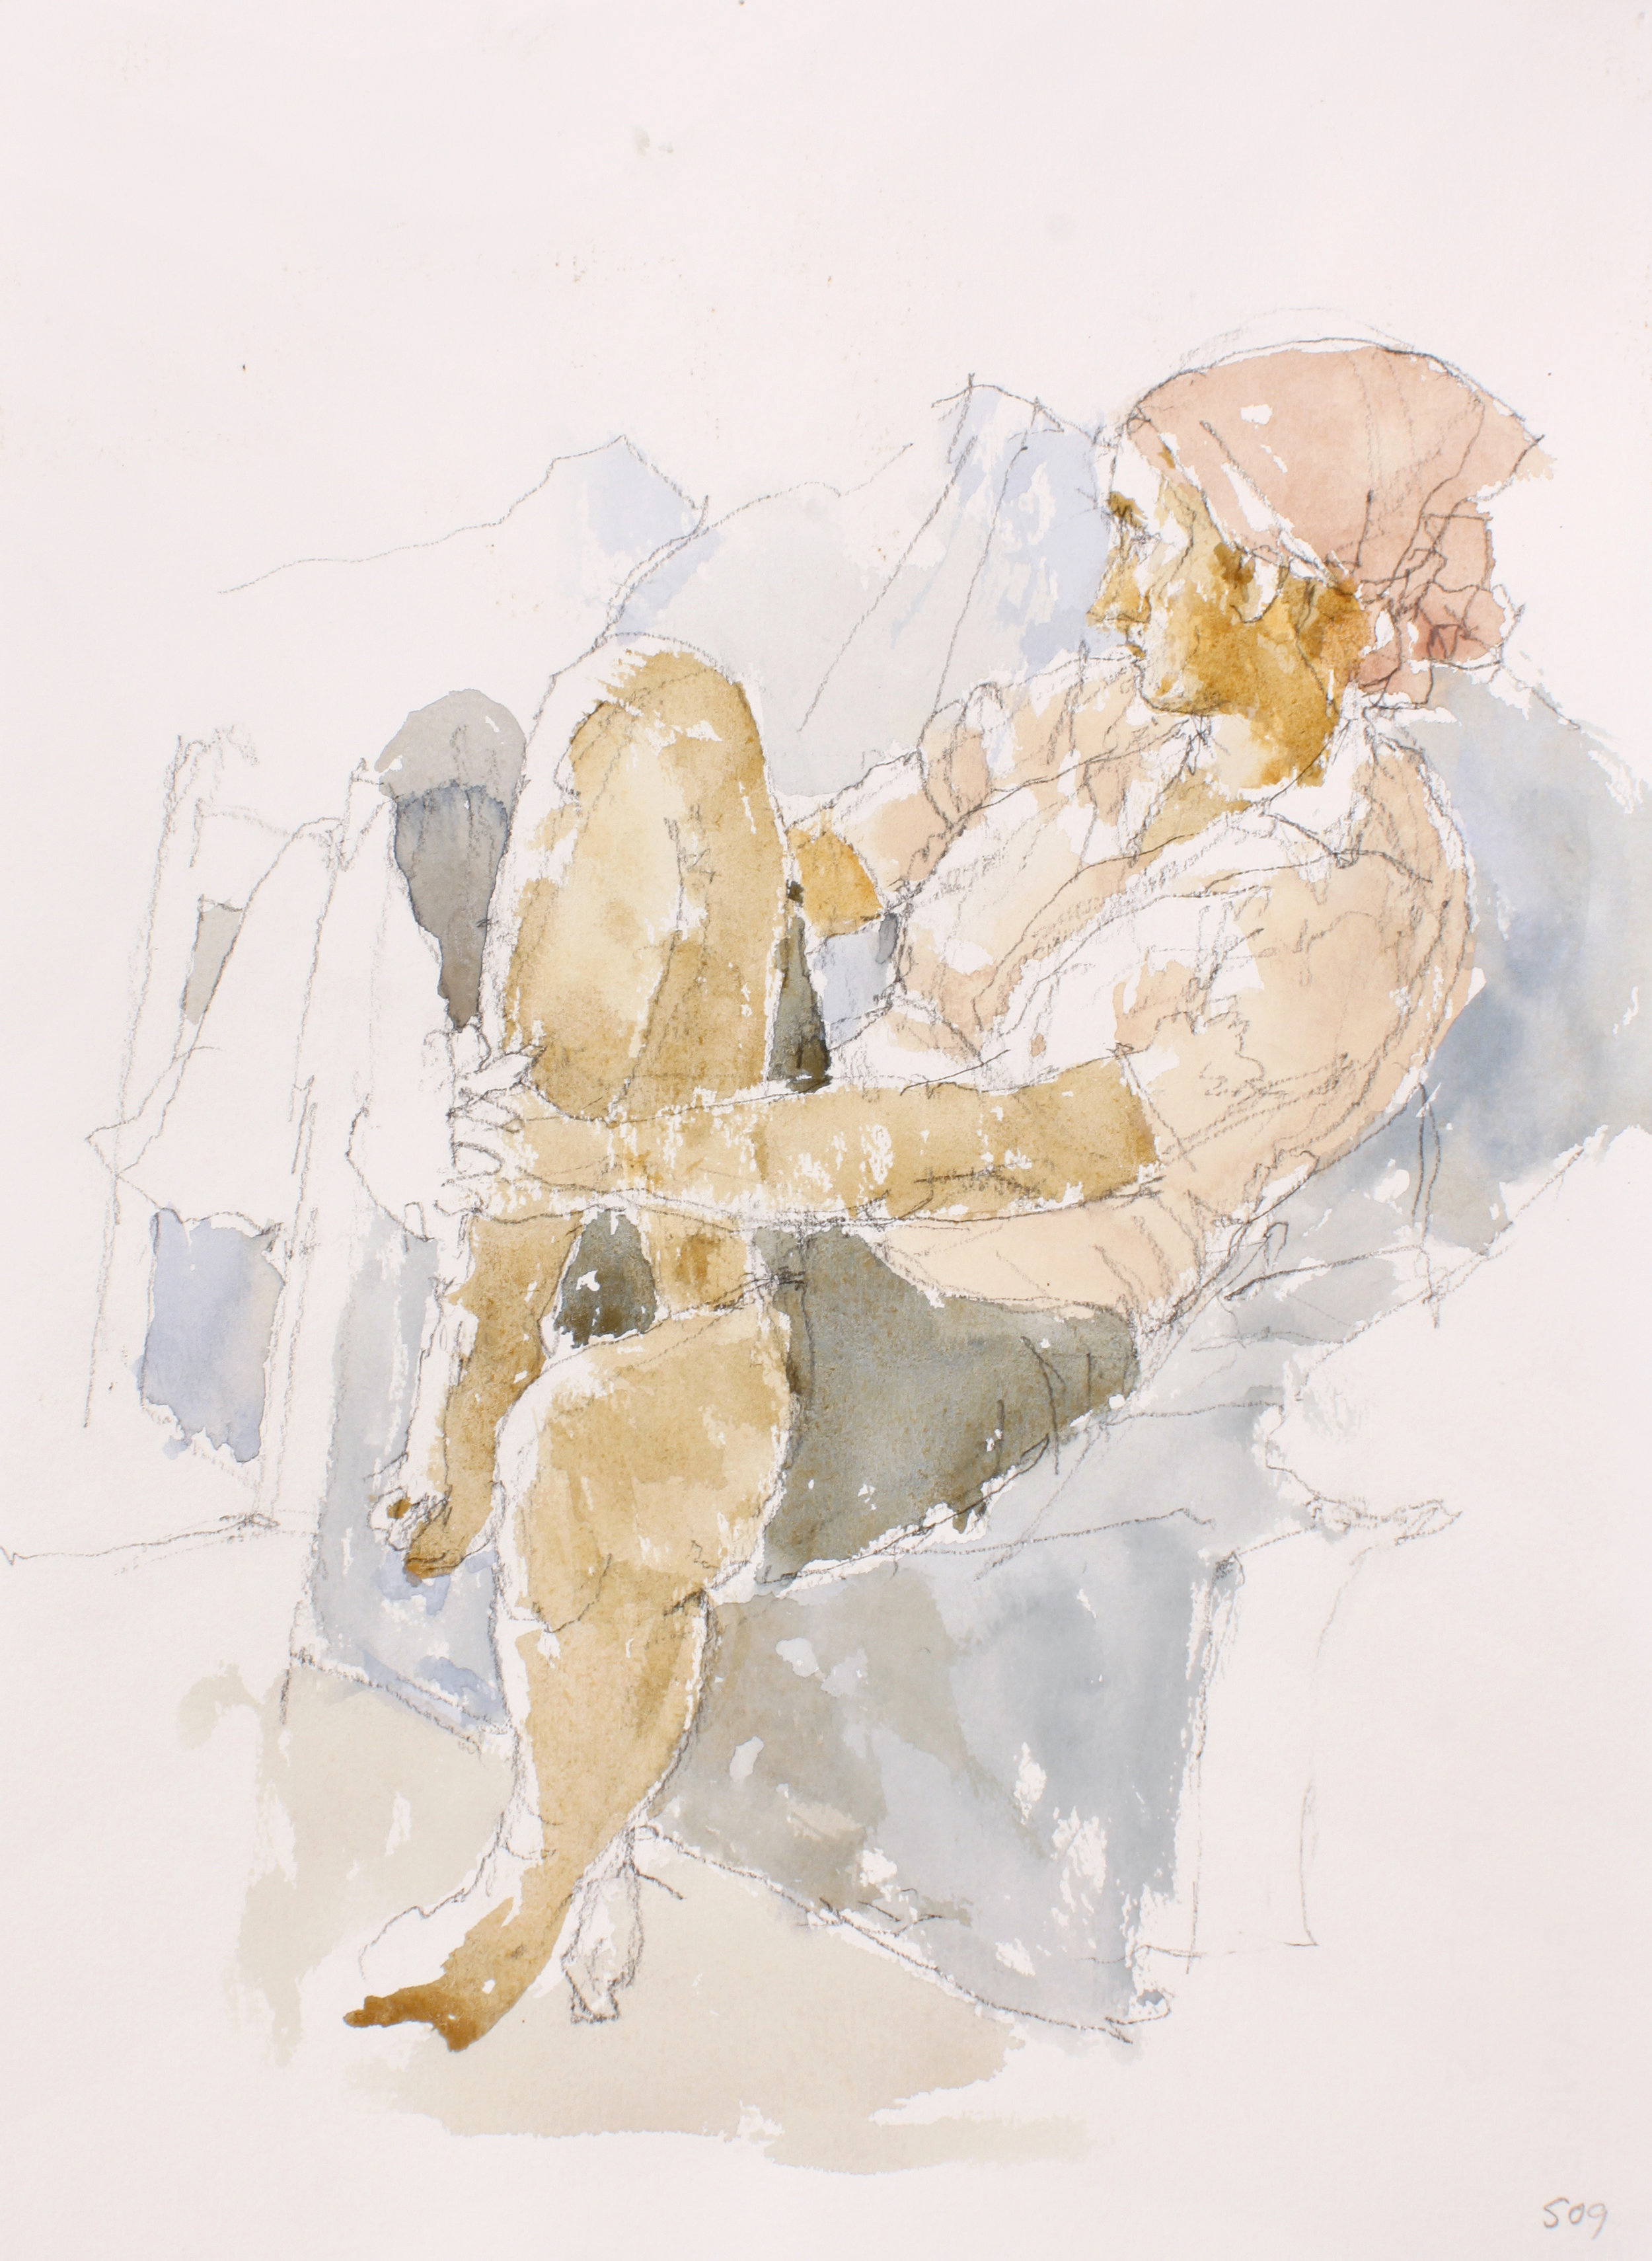 2006_Woman_with_Scarf_Holding_Knee_Watercolour_and_pencil_on_paper_15x11in_WPF095.jpg